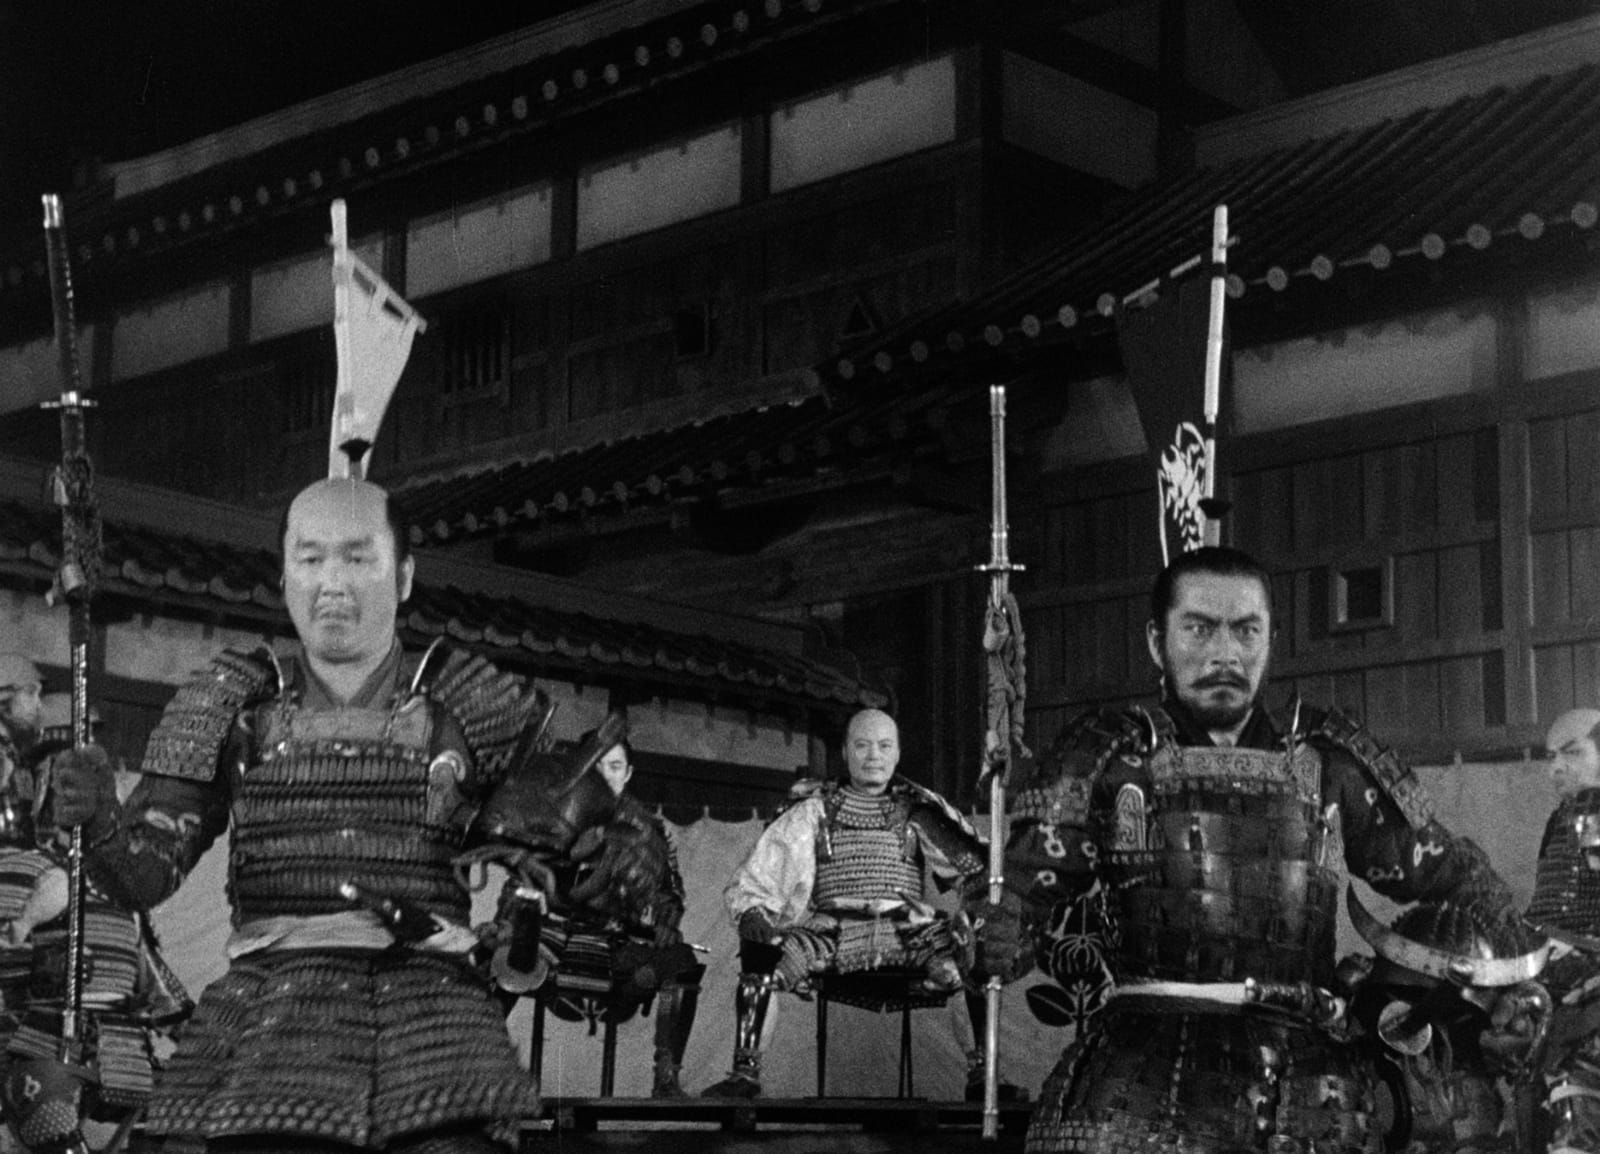 Throne of Blood | The Current | The Criterion Collection